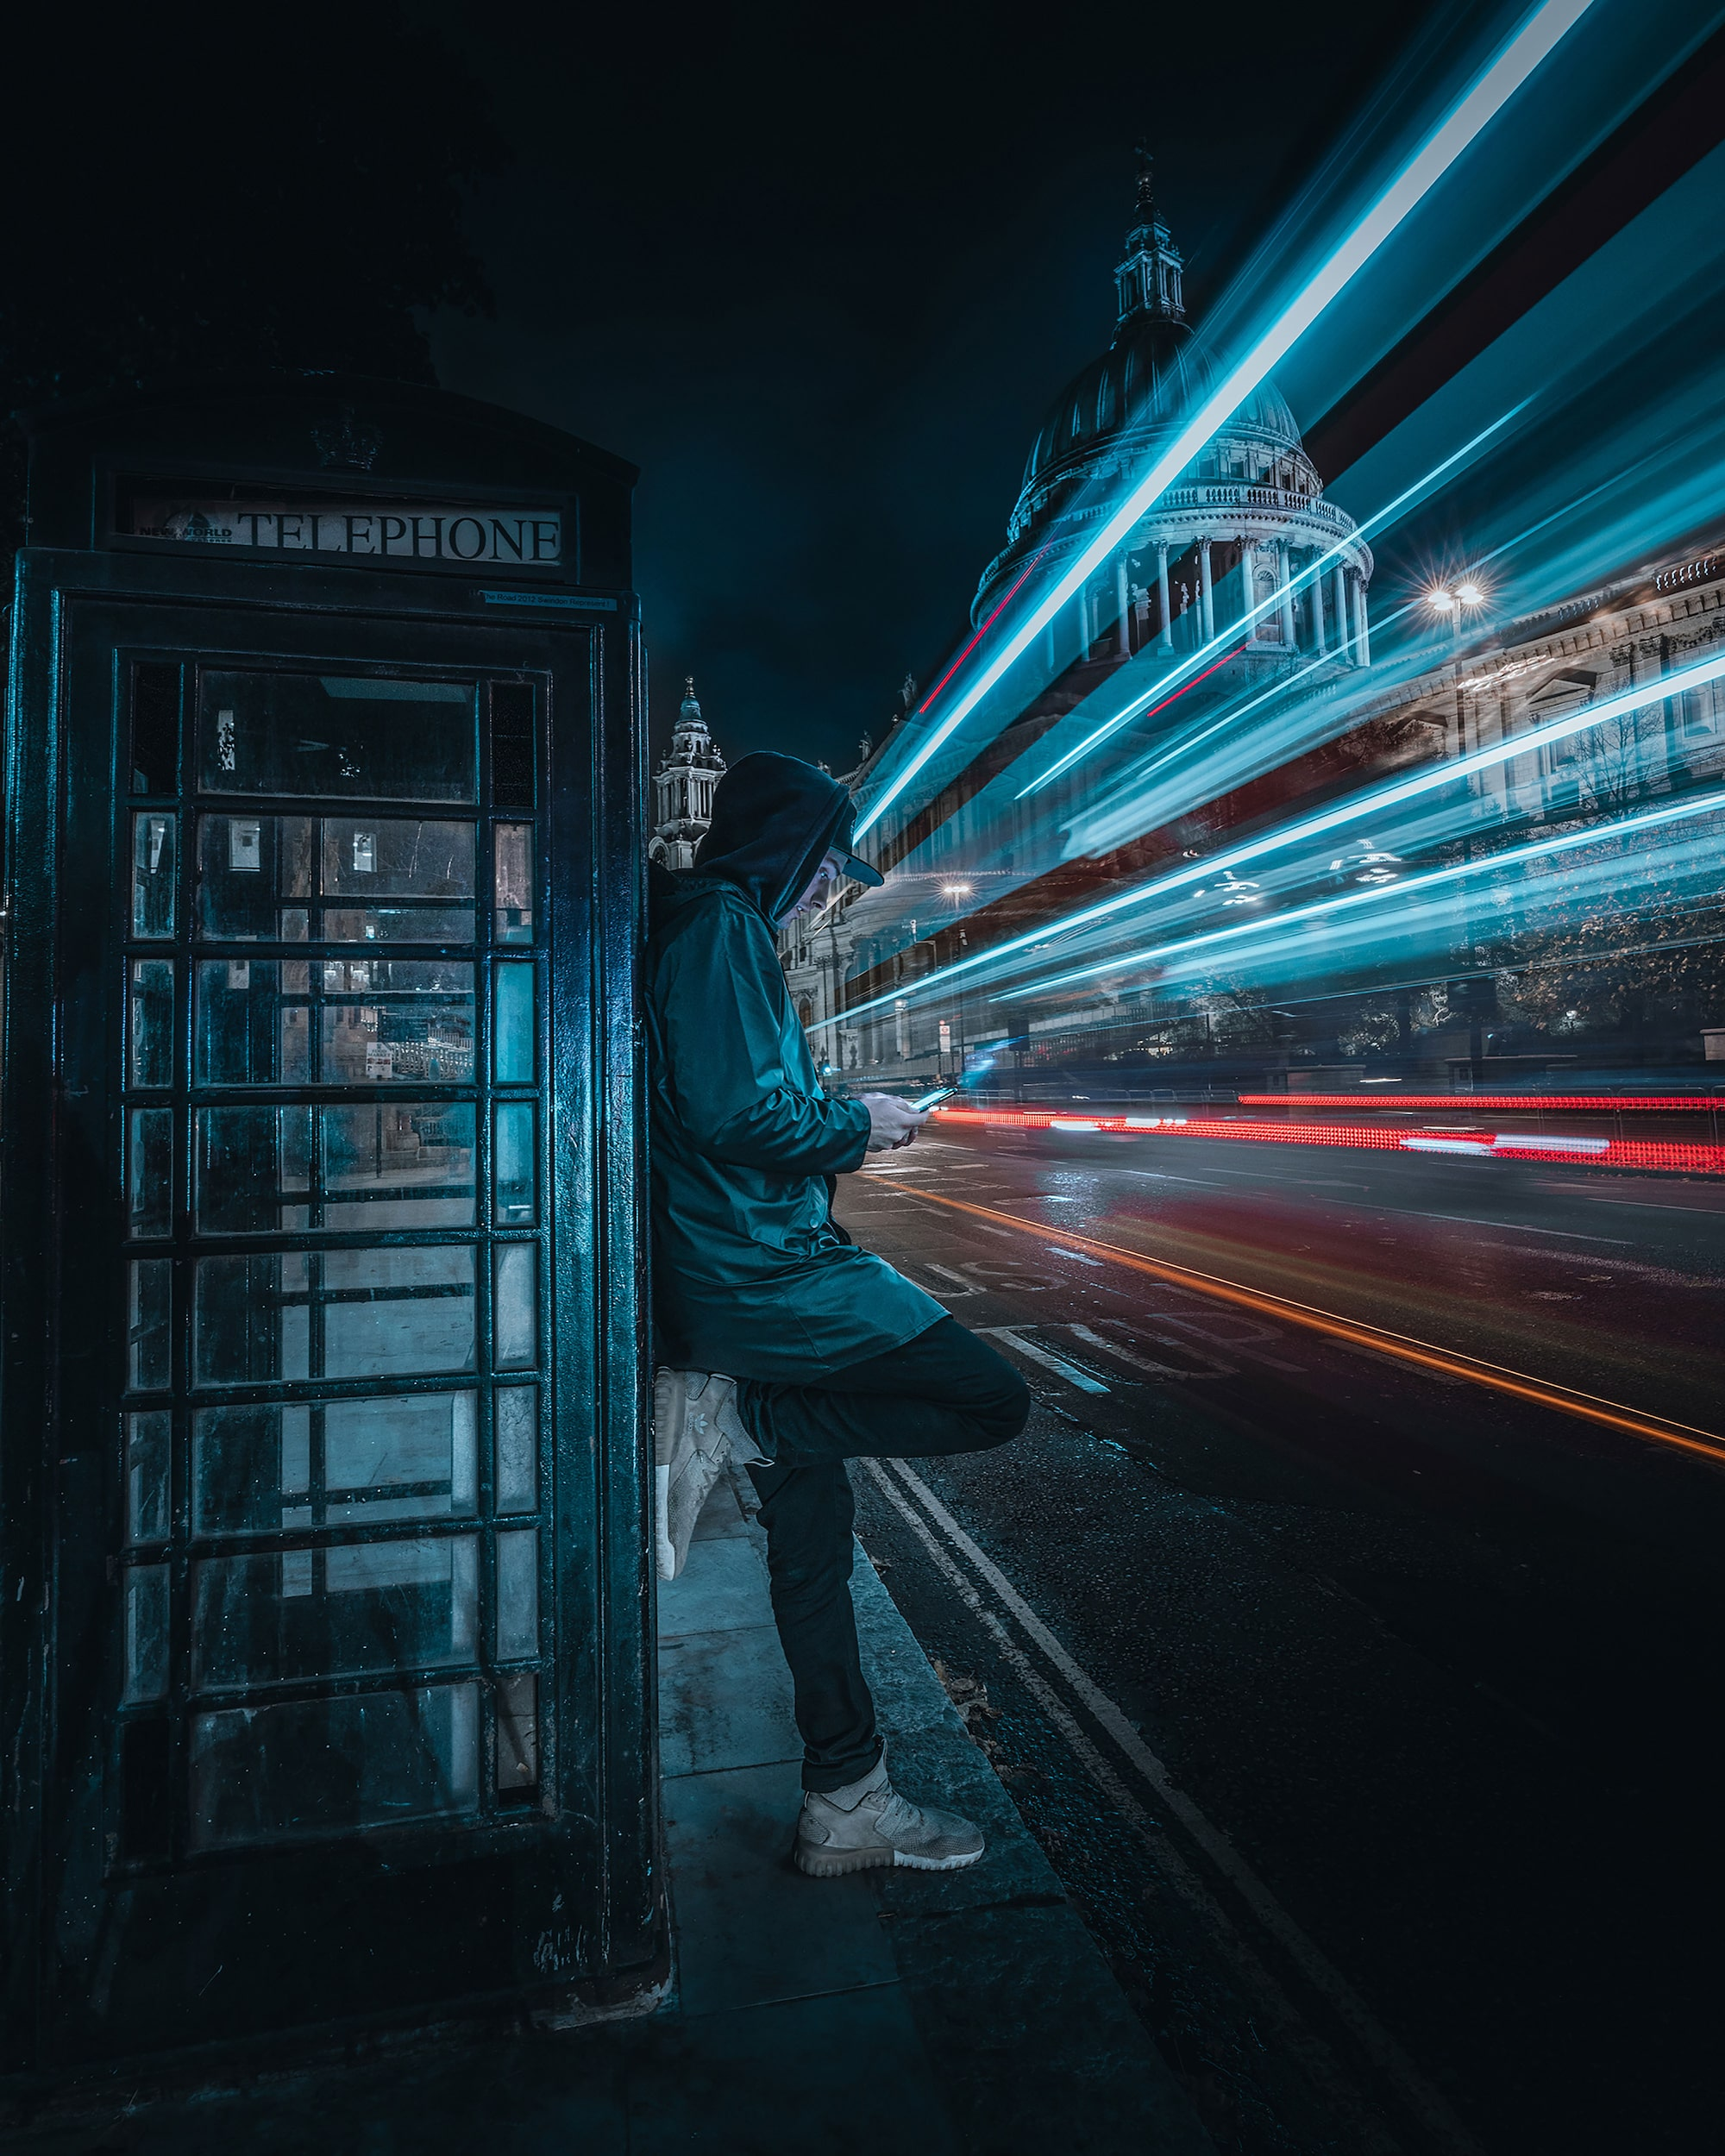 mike will sony alpha 7RIII man leans against a telephone box at night as traffic trails wind through the street